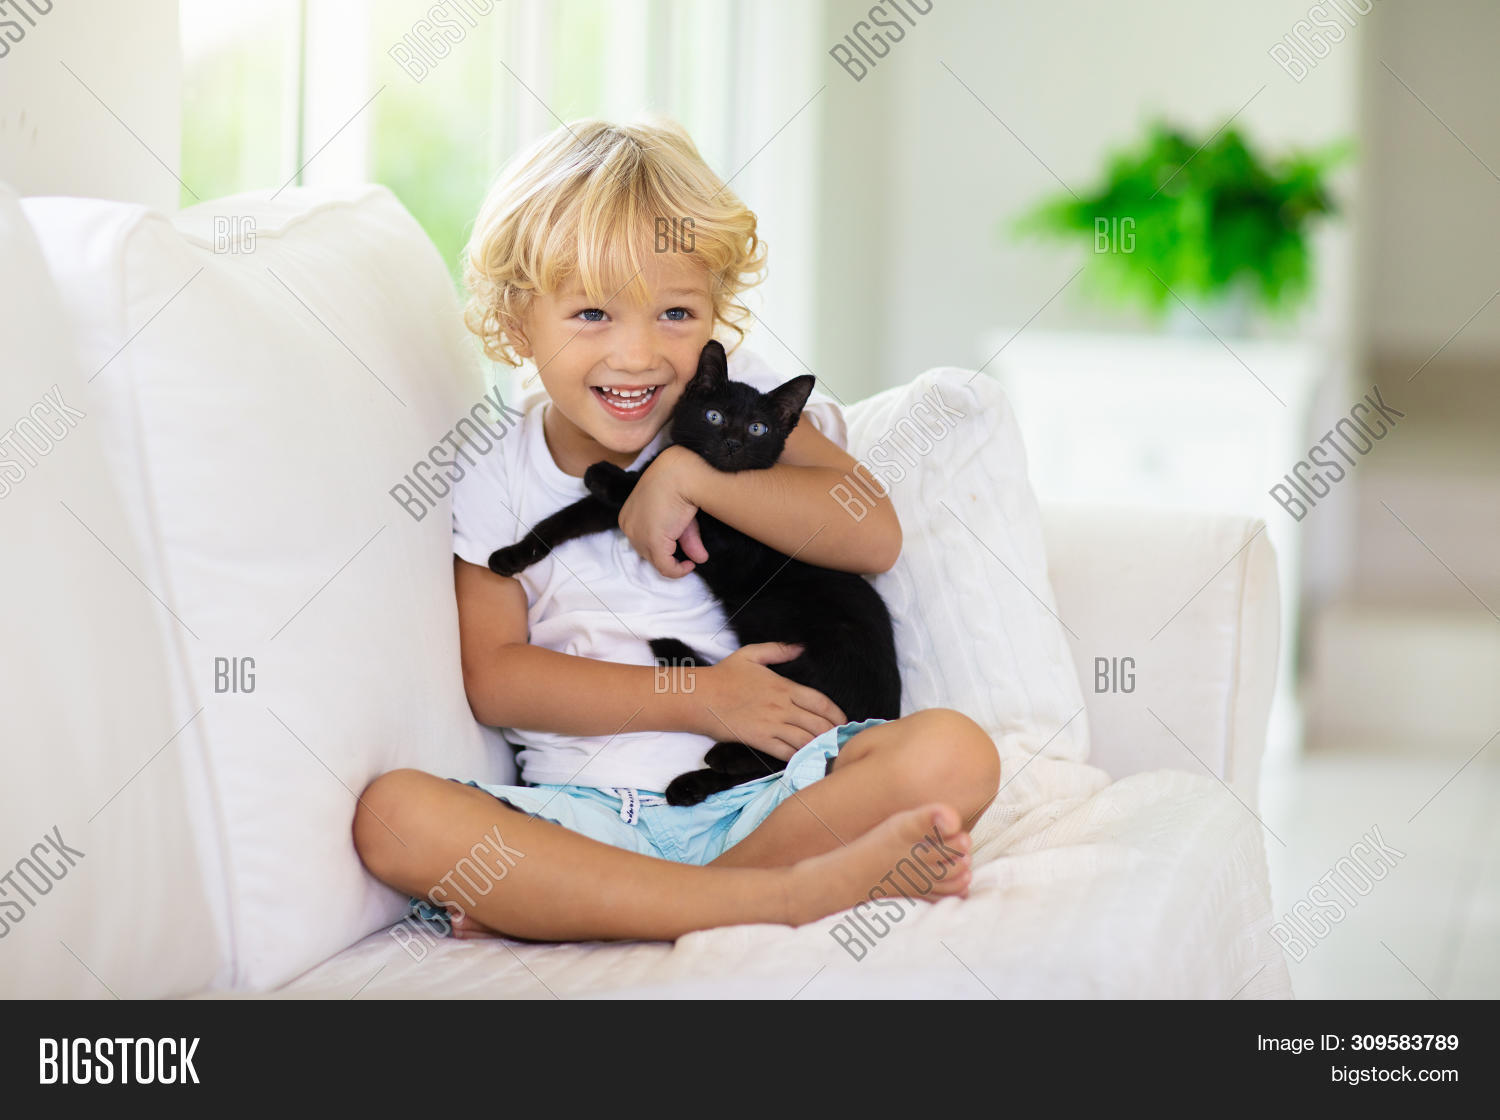 Swell Child Playing Baby Cat Image Photo Free Trial Bigstock Dailytribune Chair Design For Home Dailytribuneorg